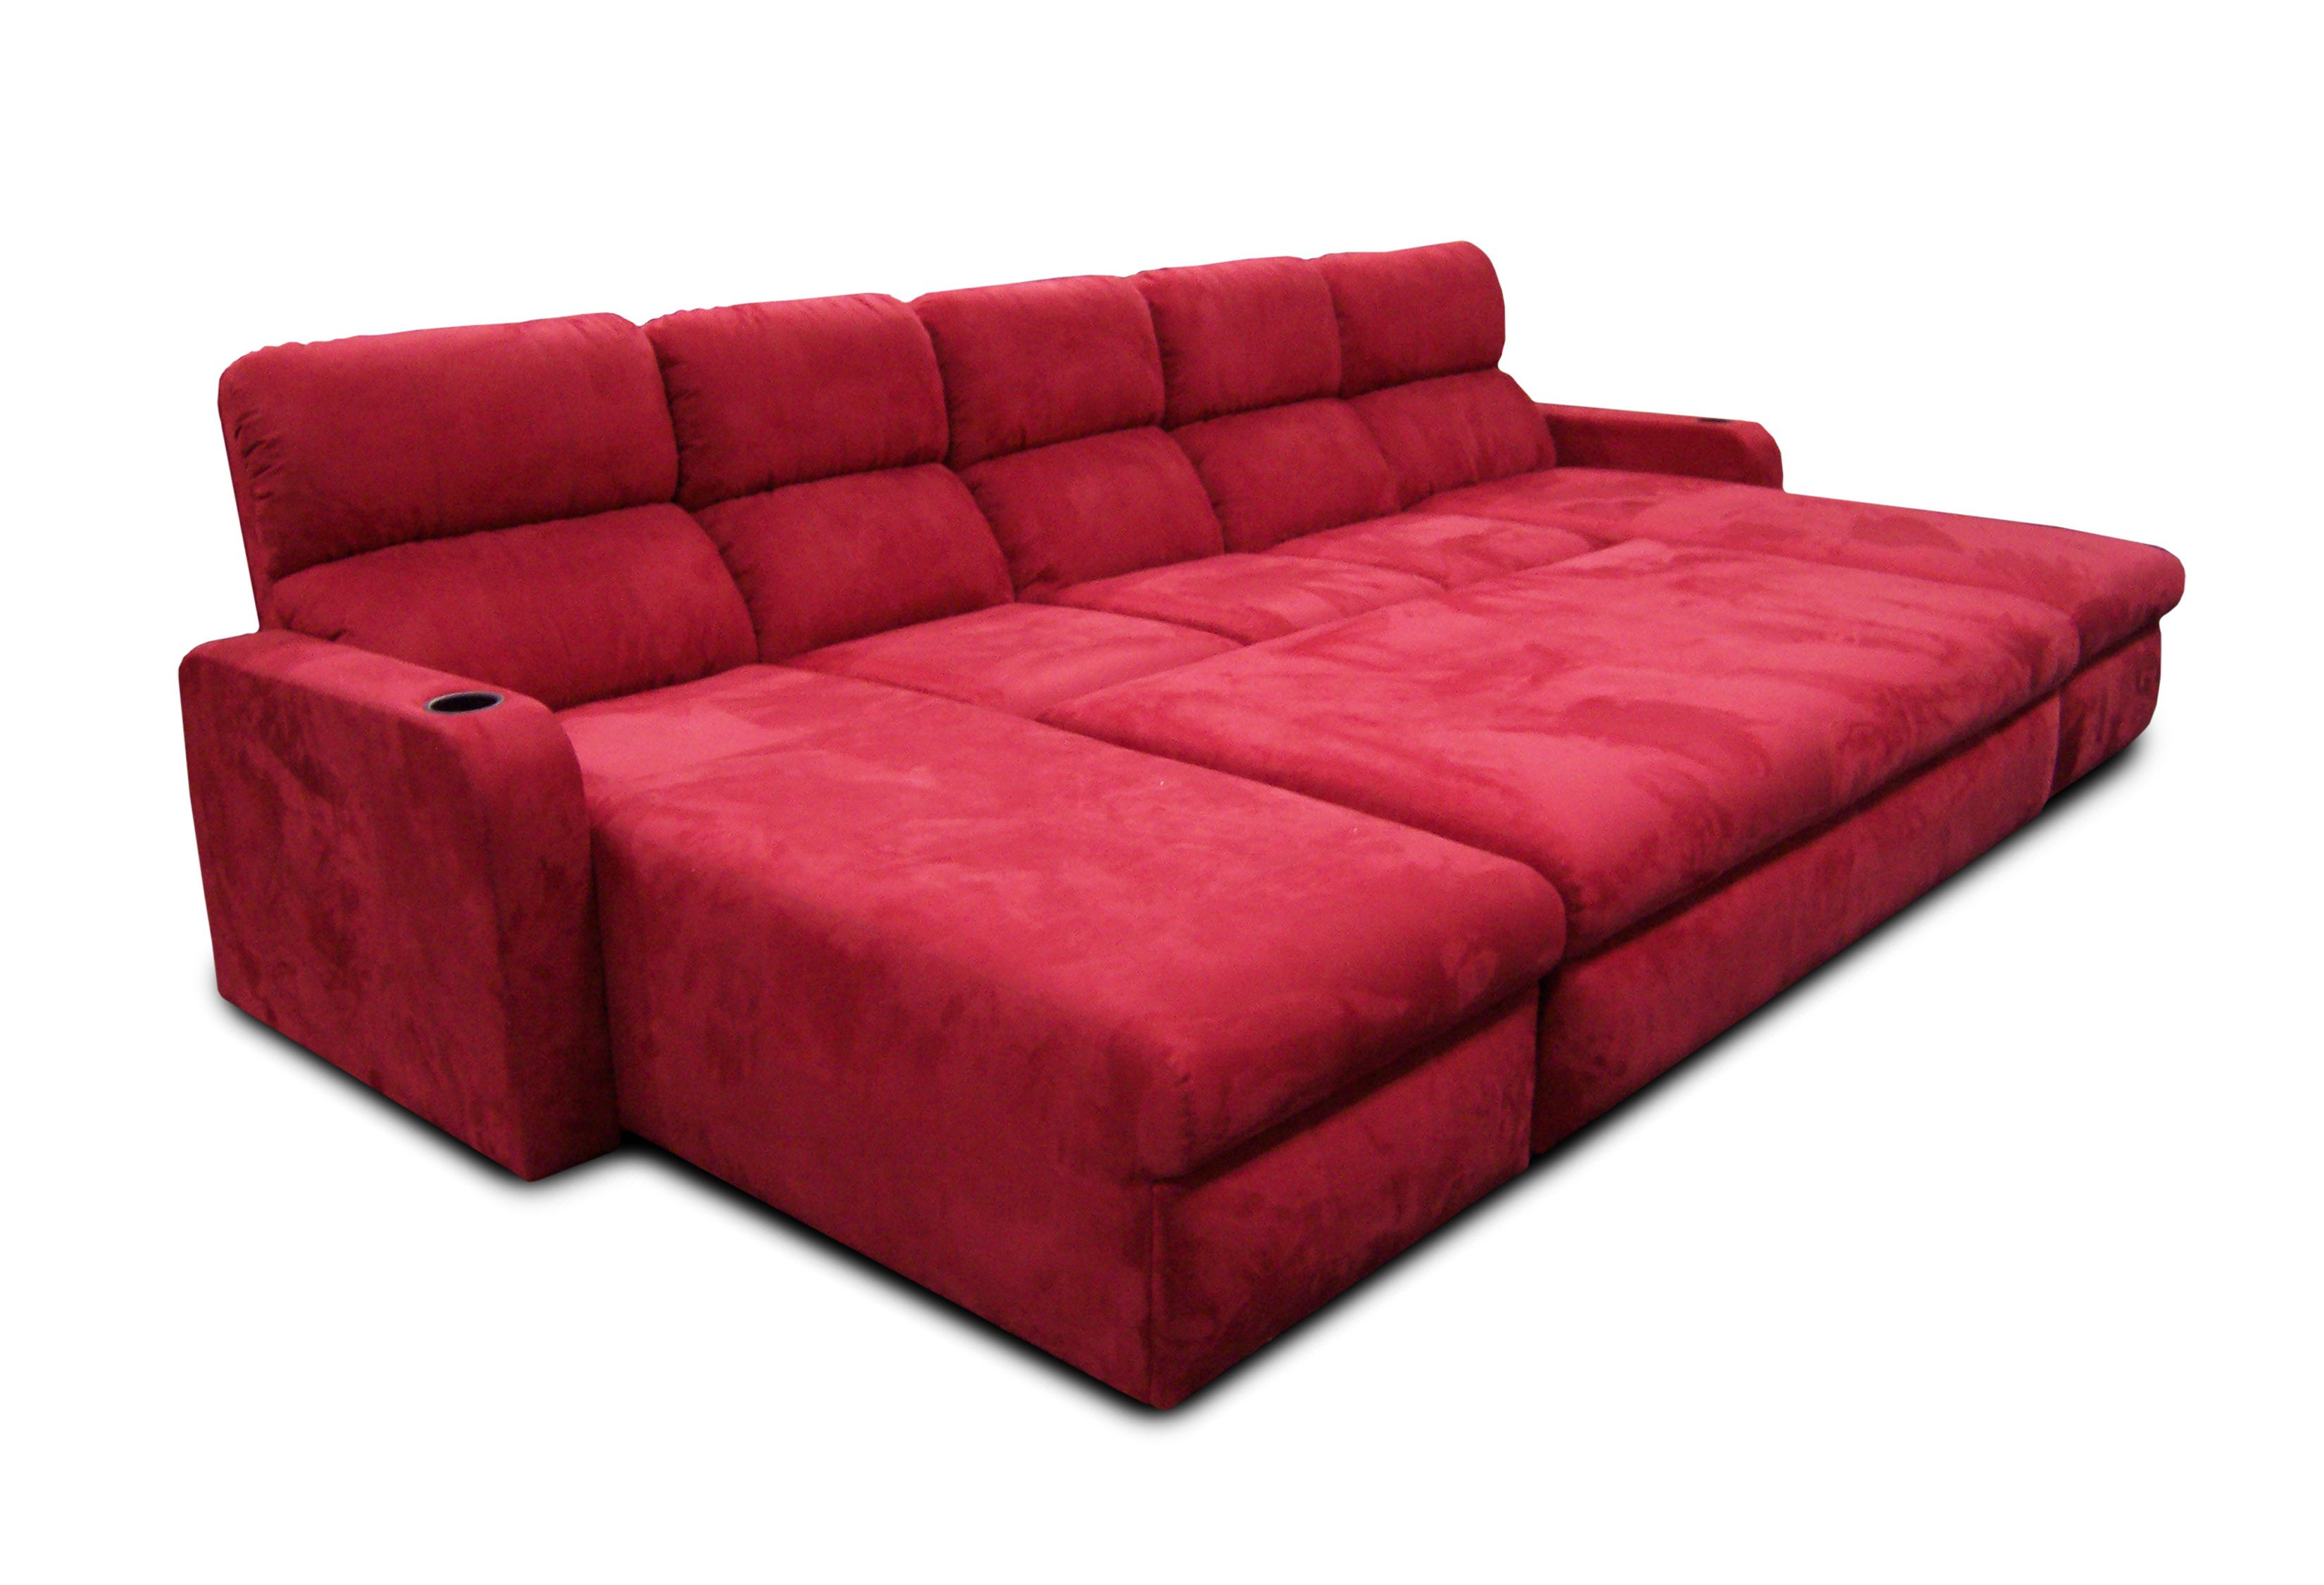 Nice Double Chaise Lounge Sofa , Epic Double Chaise Lounge Sofa 14 In  Modern Sofa Inspiration With Double Chaise Lounge Sofa ...